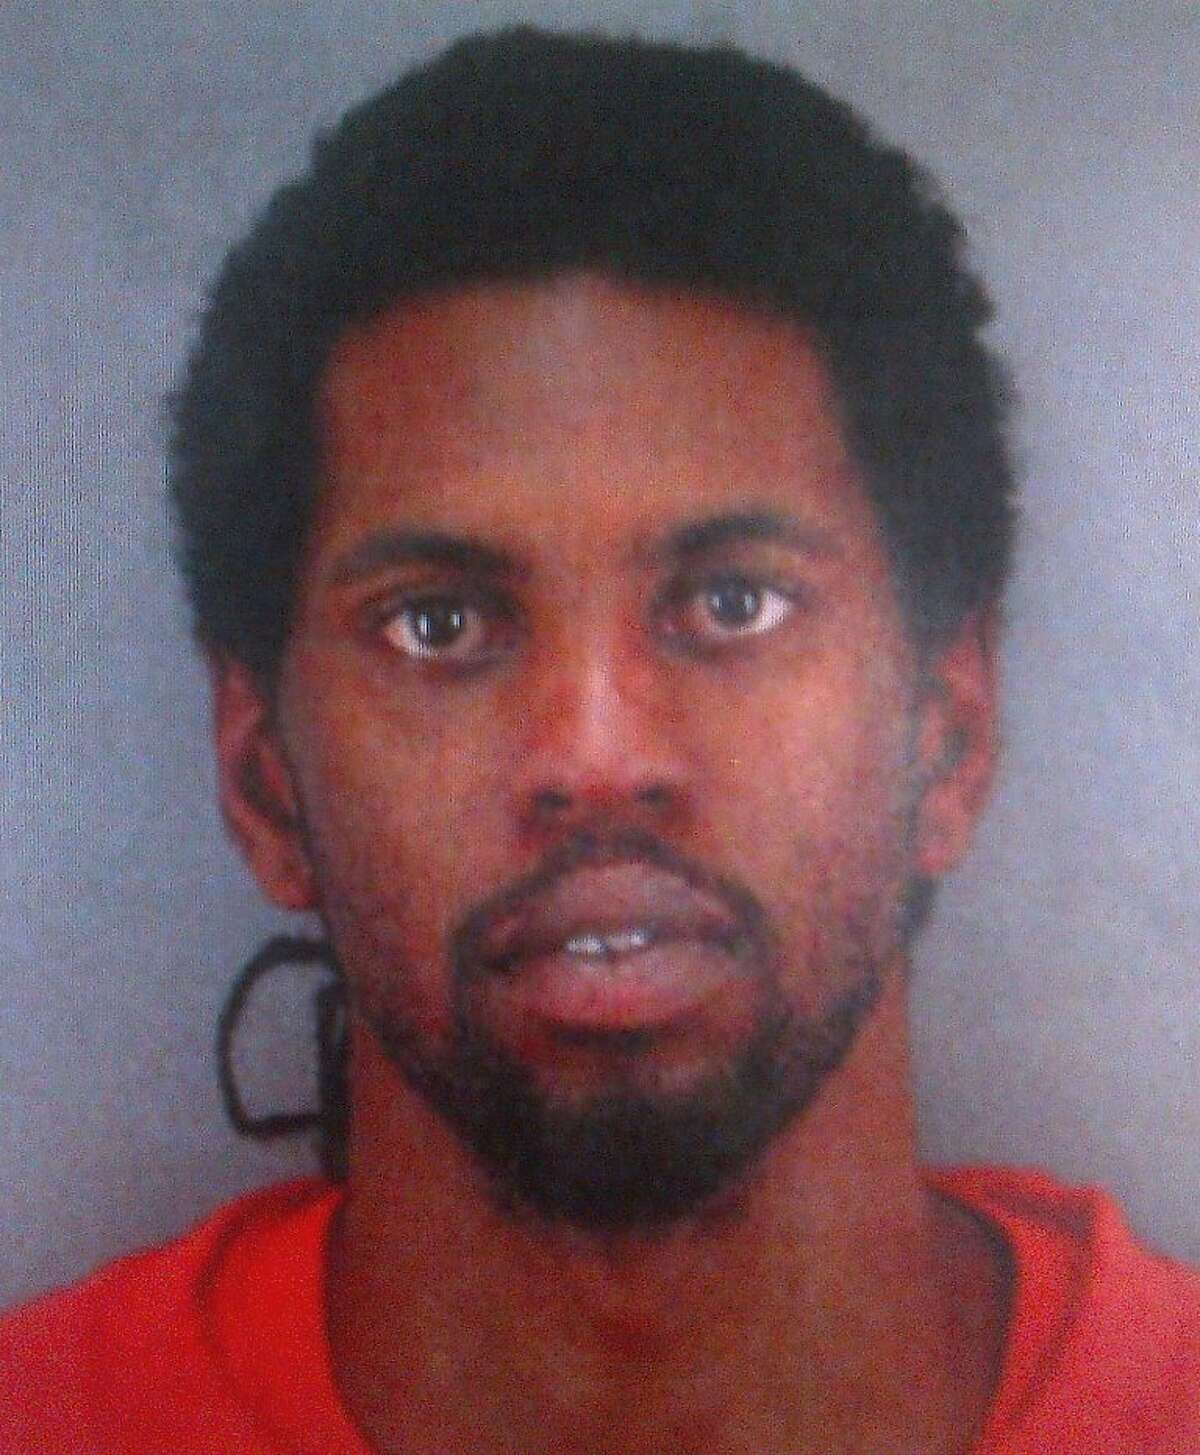 Dexter Oliver surrendered to police, he is suspected of attempted murder and arson.